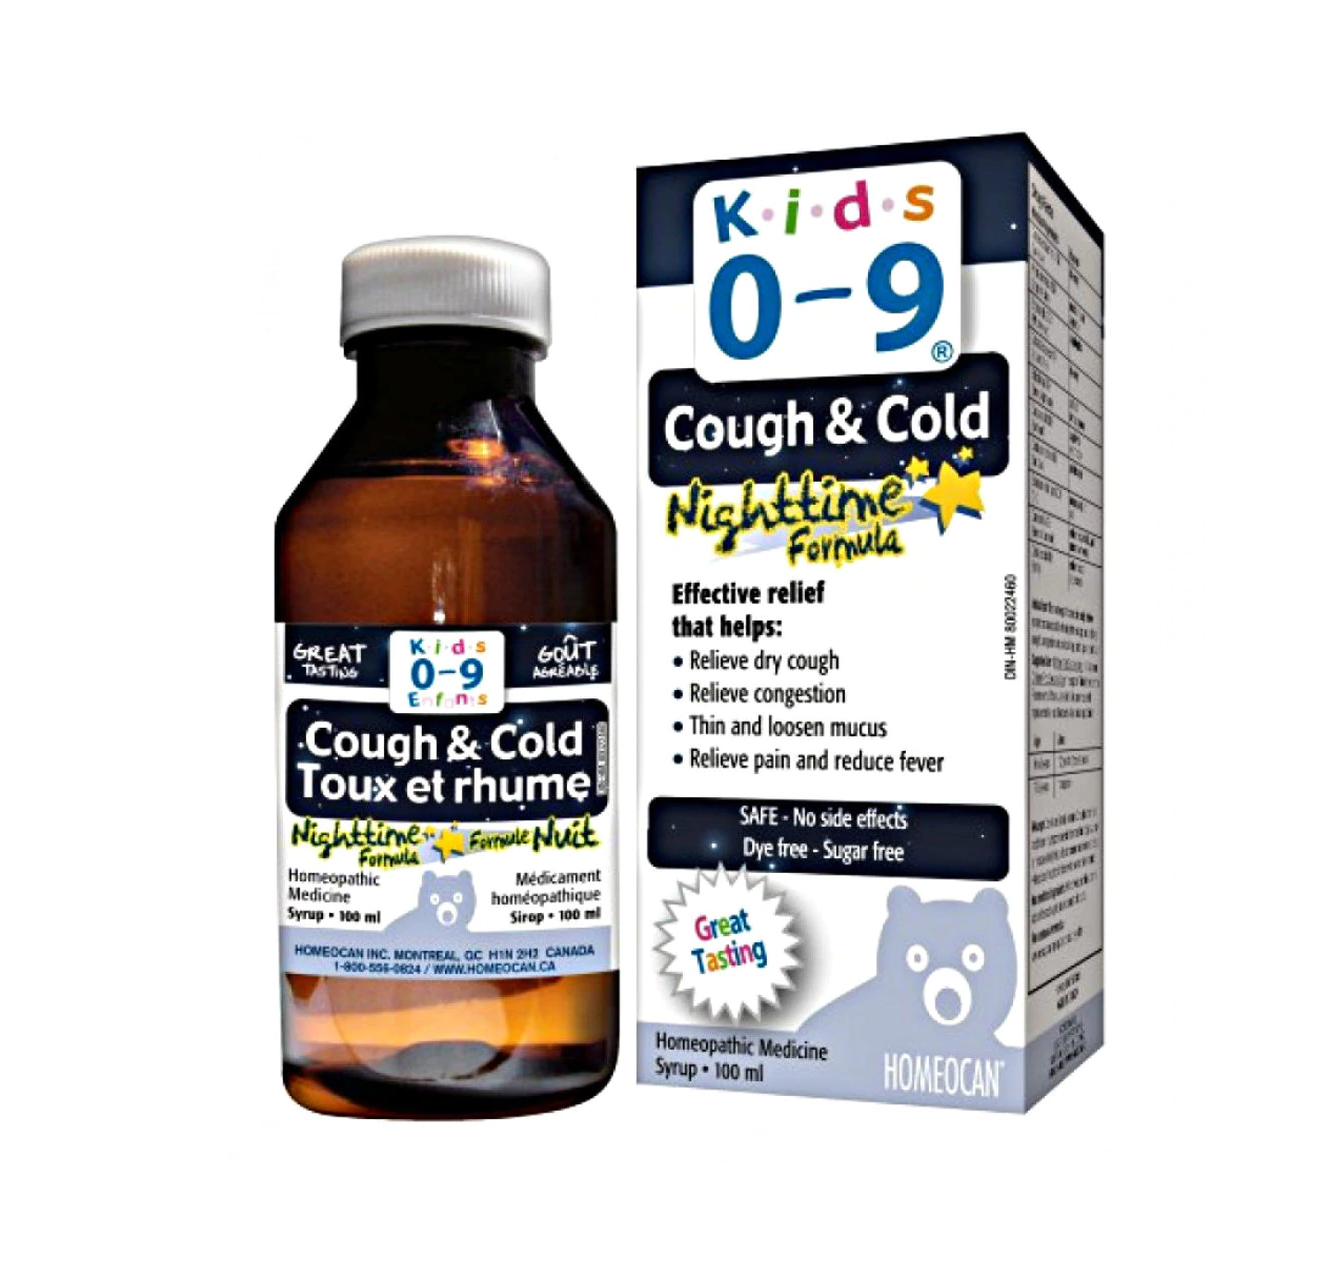 Kids 0-9 Night Syrup Cough & Cold 100mL